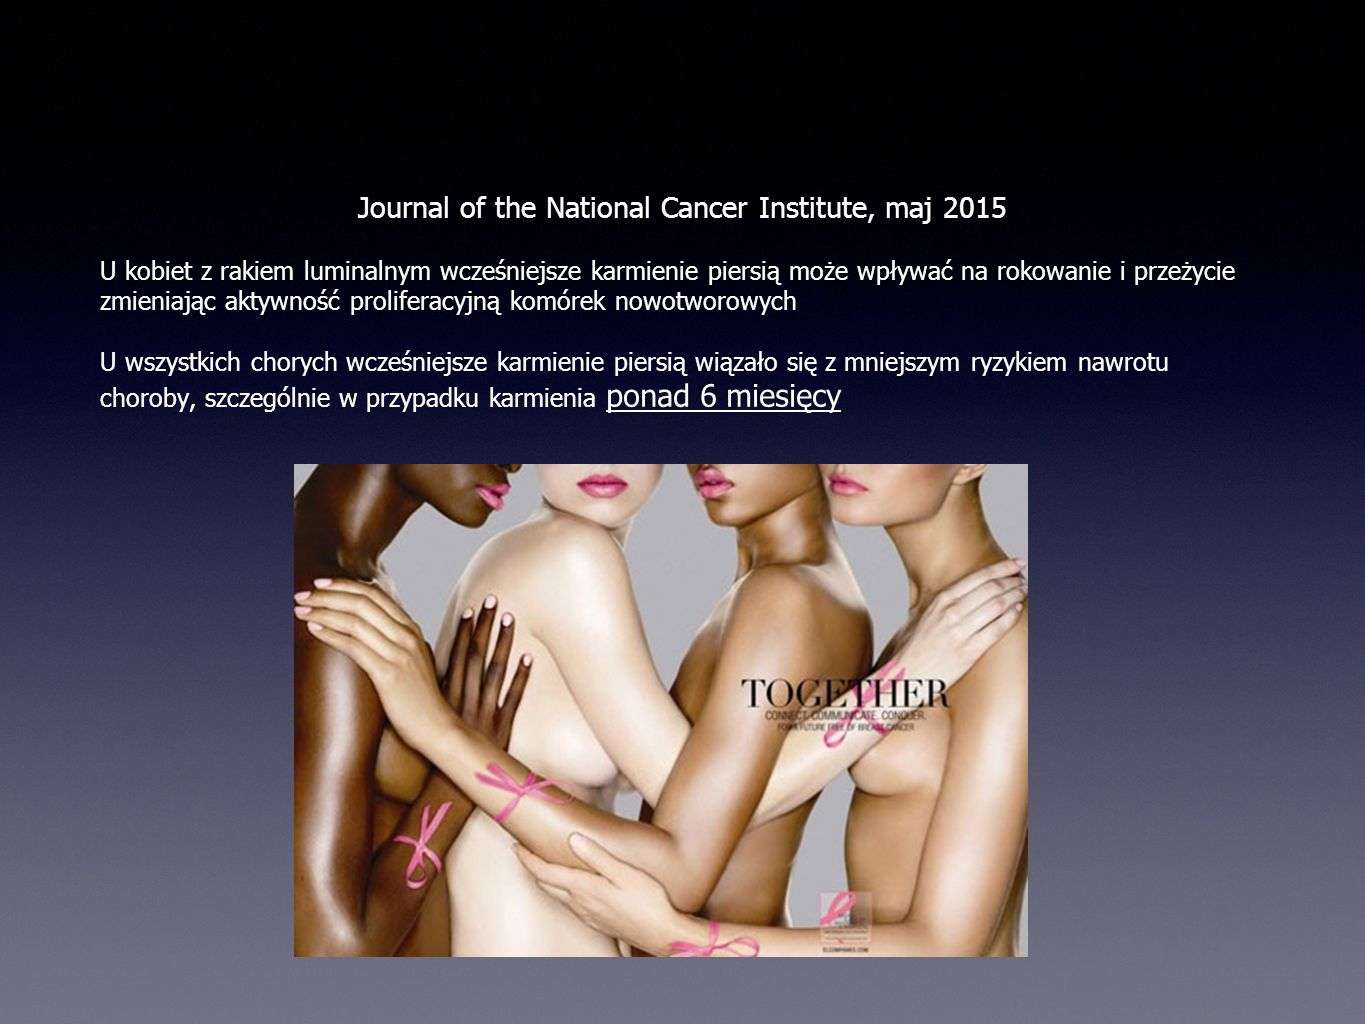 Journal of the National Cancer Institute, maj 2015